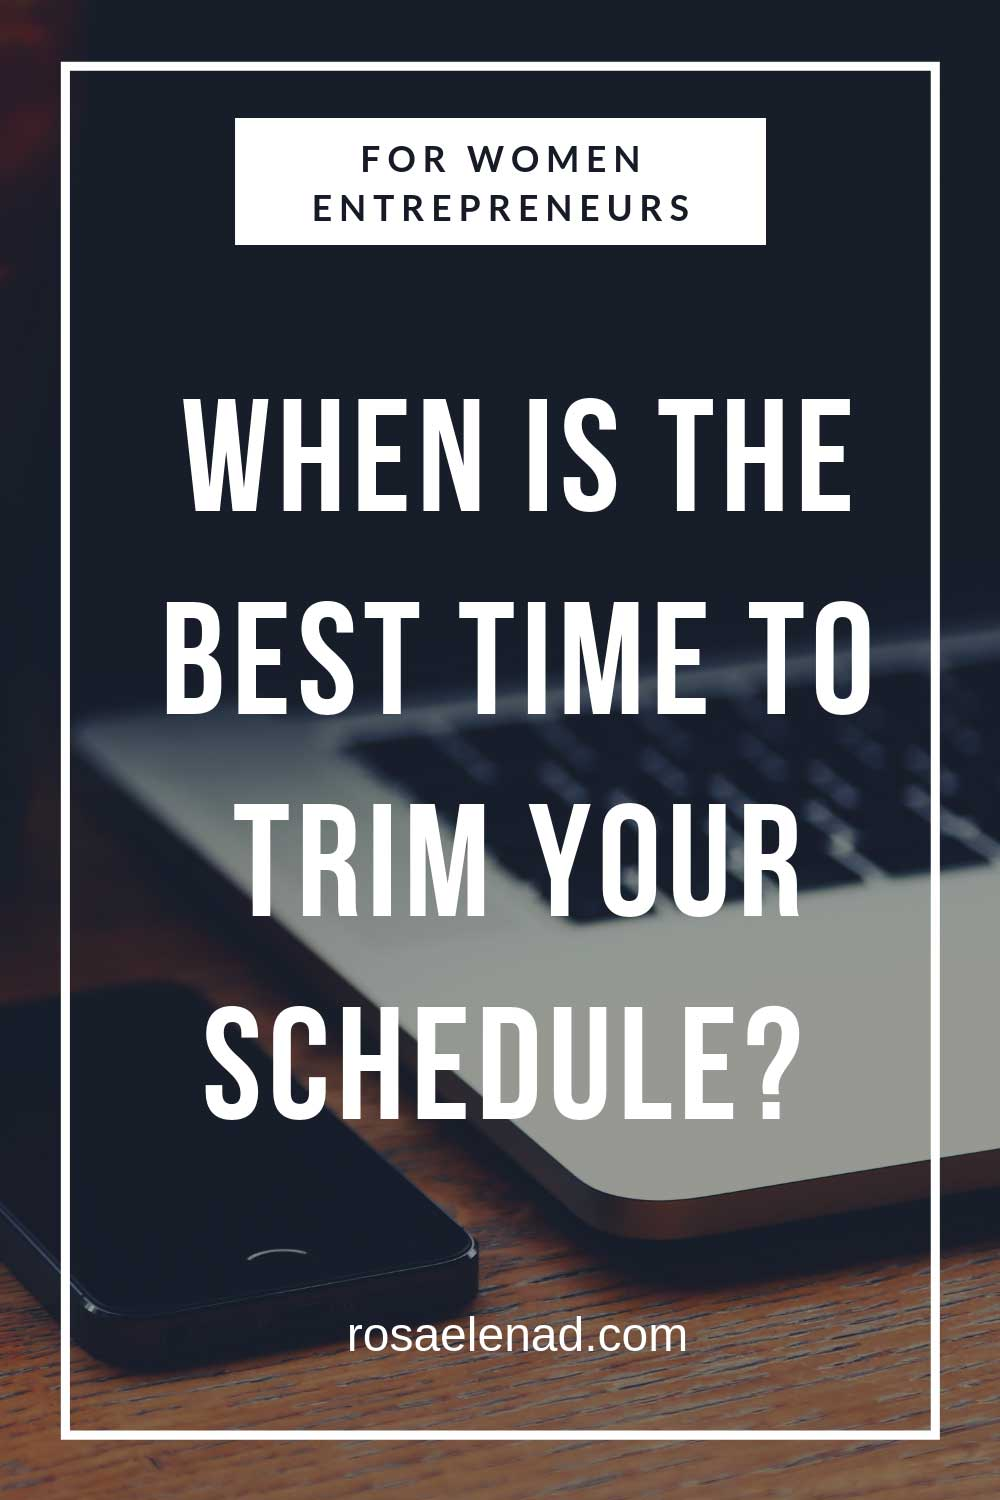 For Women Entrepreneurs: When Is the Best Time to Trim Your Schedule?